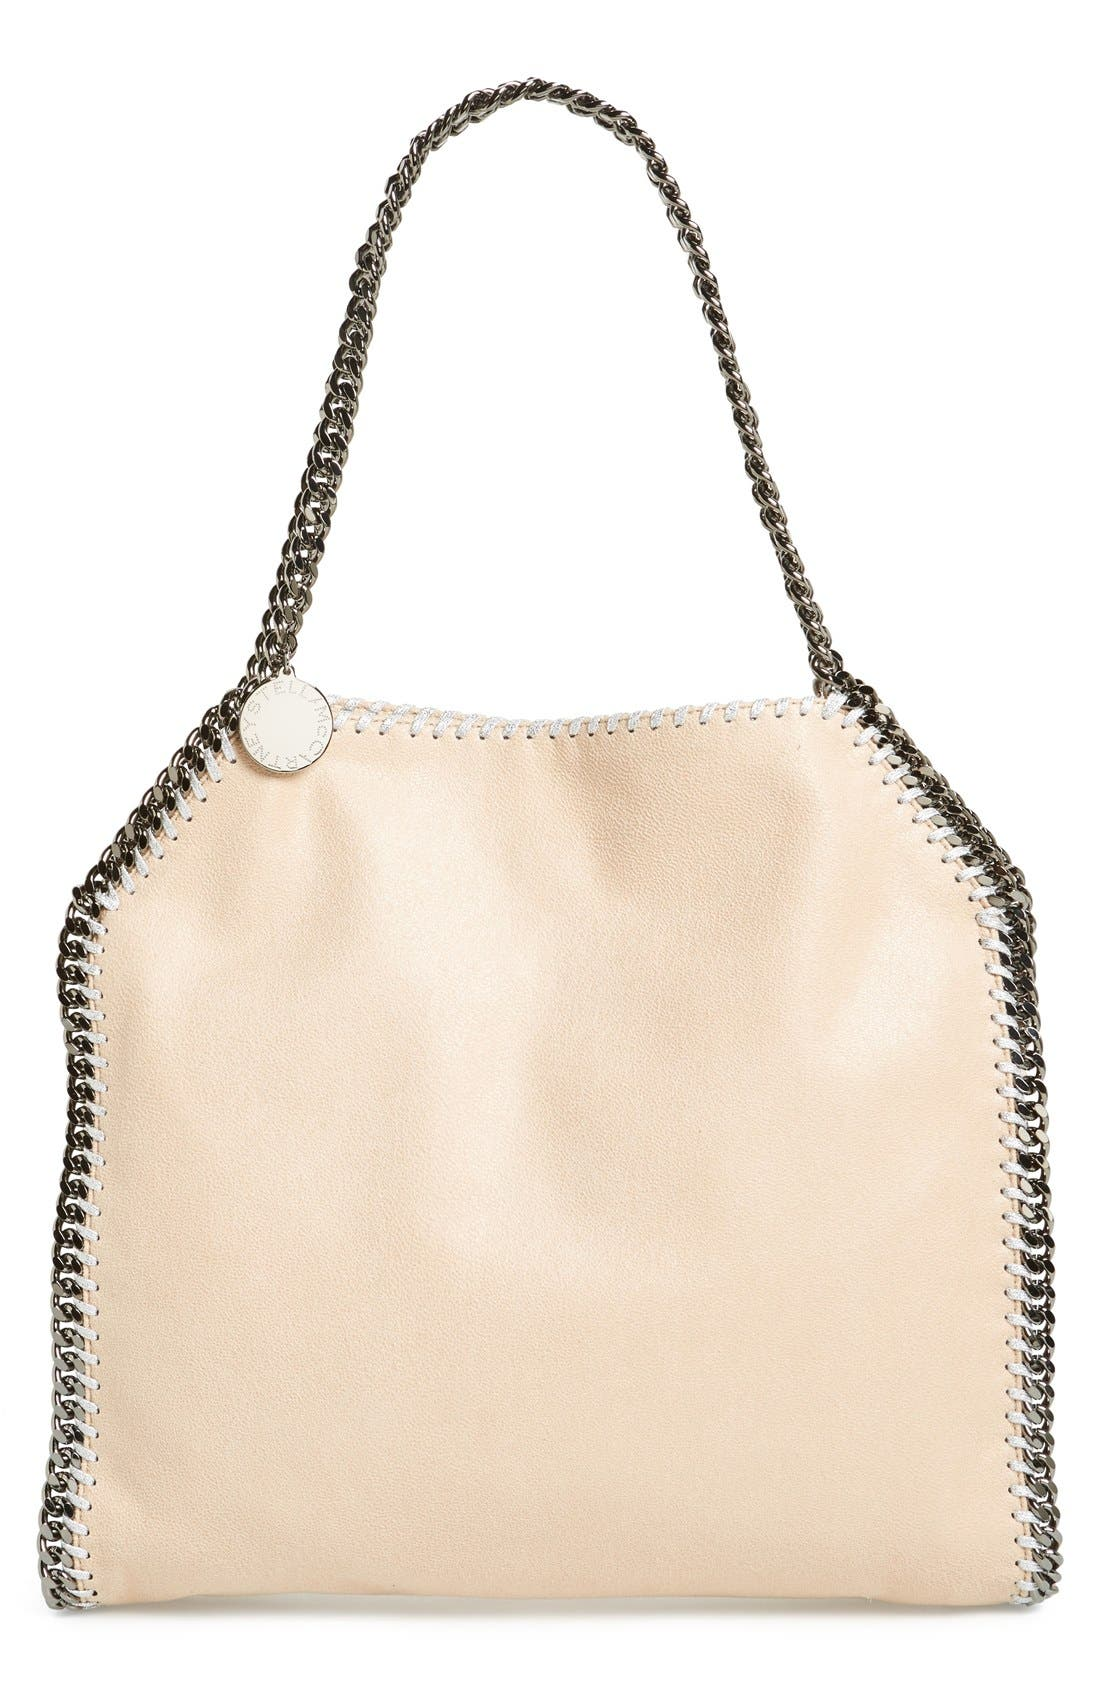 STELLA MCCARTNEY Small Falabella - Shaggy Deer Faux Leather Tote